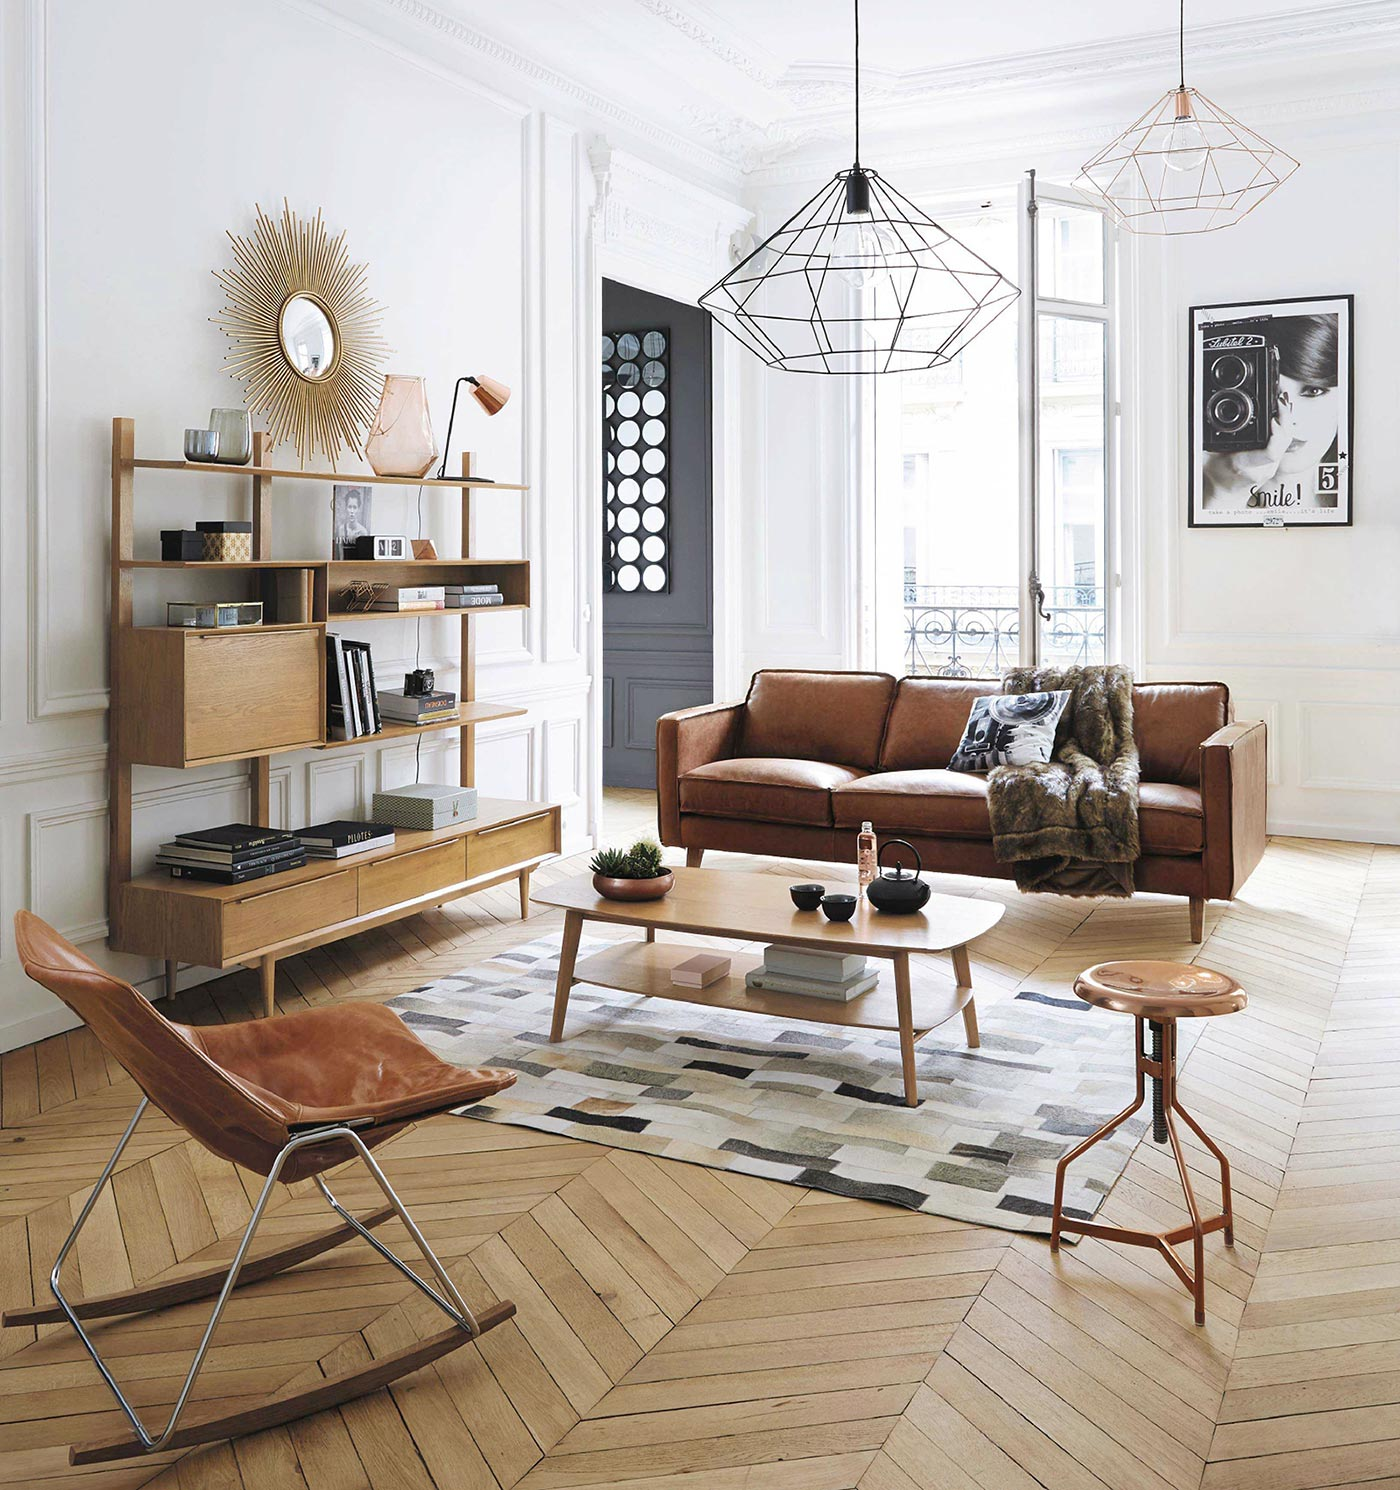 Mid-Century Modern Living room design, image by Maisons du monde